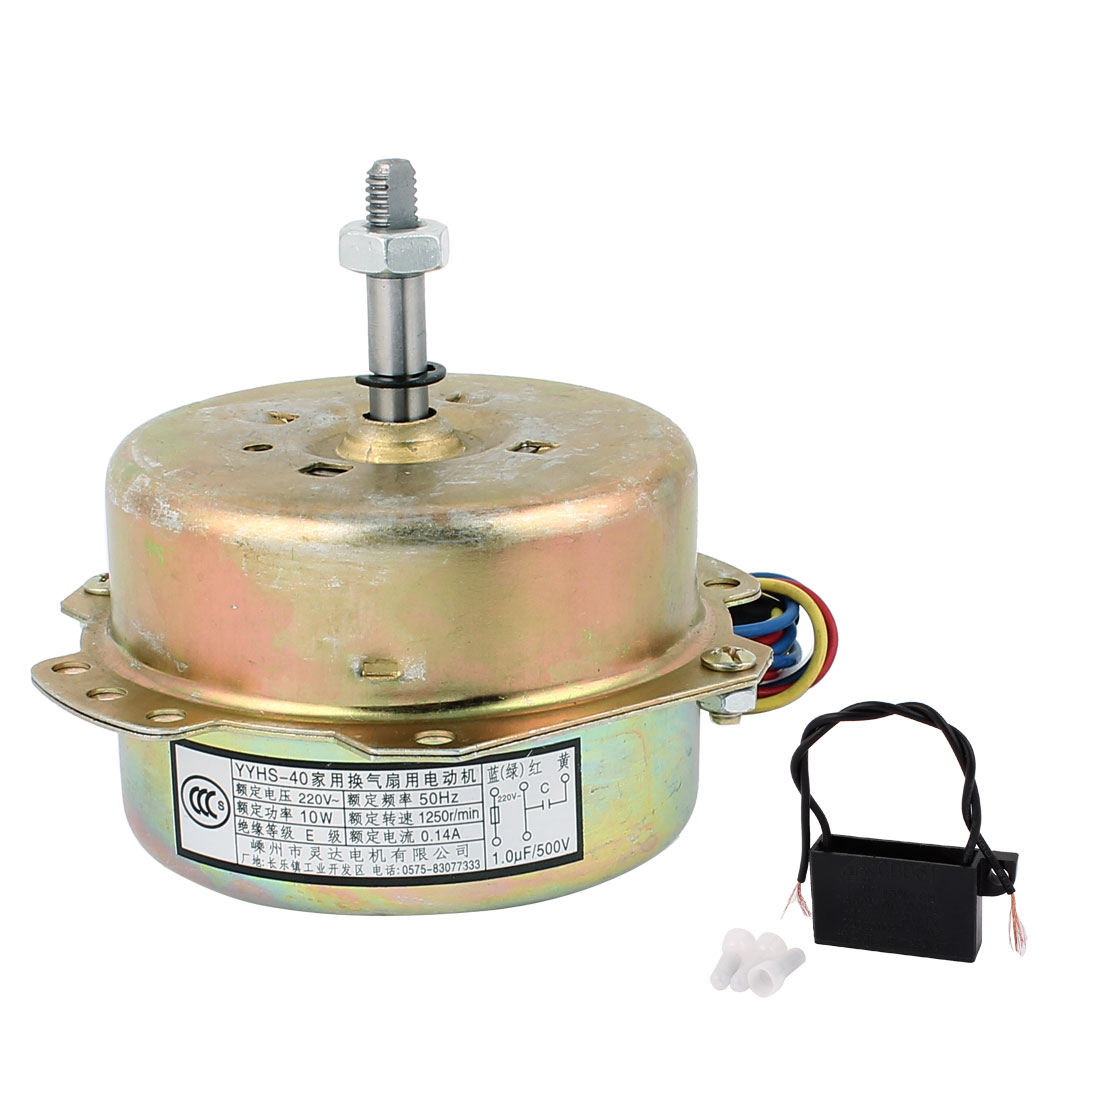 AC 220V 0.14A 10W 1250RPM 8mmx35mm Home Electric Ventilator Fan Motor